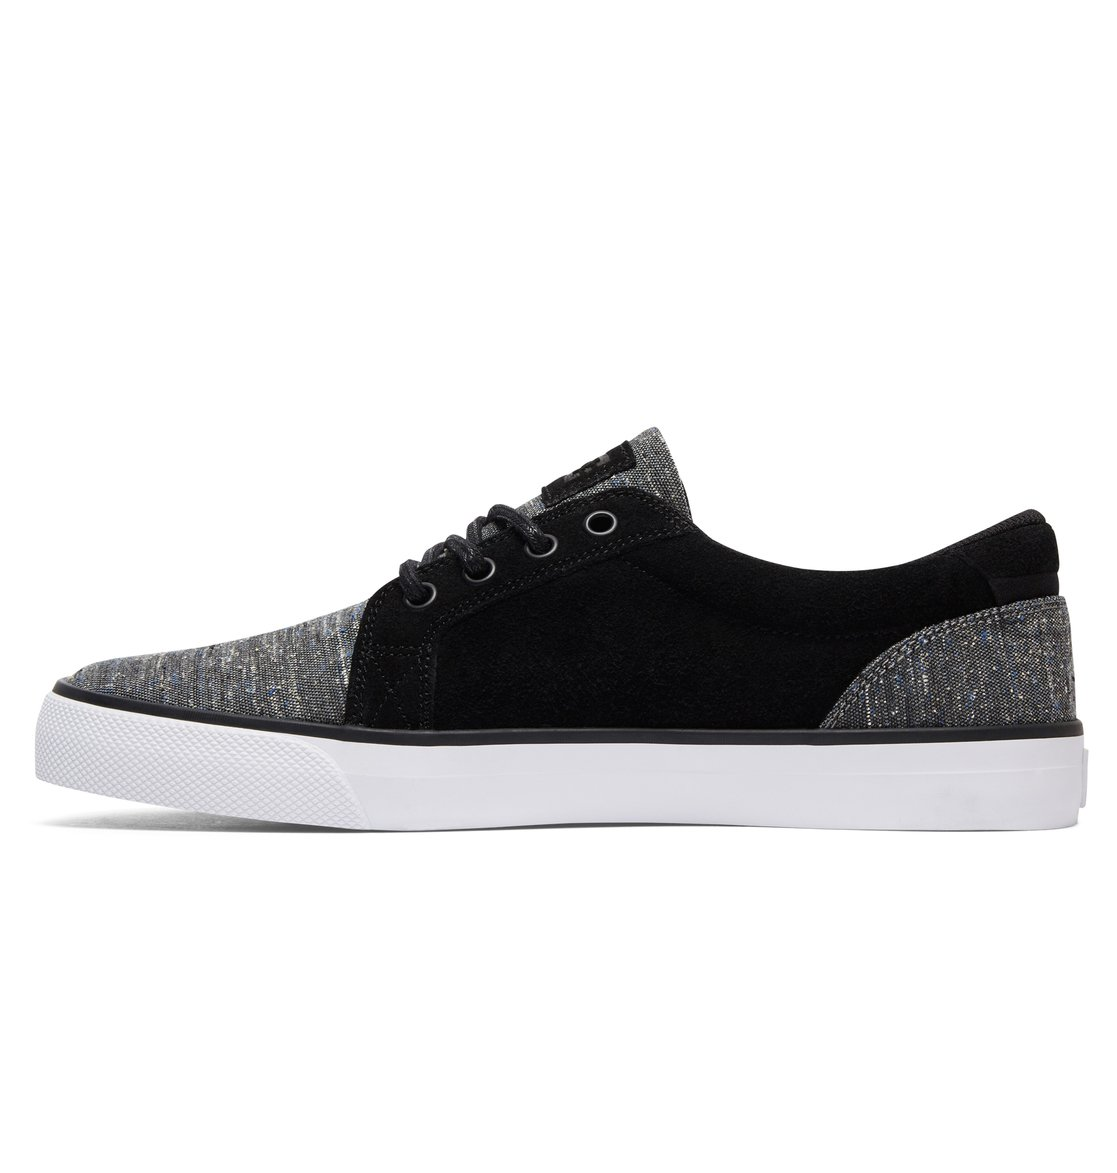 DC Shoes Council TX - Shoes - Zapatos - Hombre - EU 40